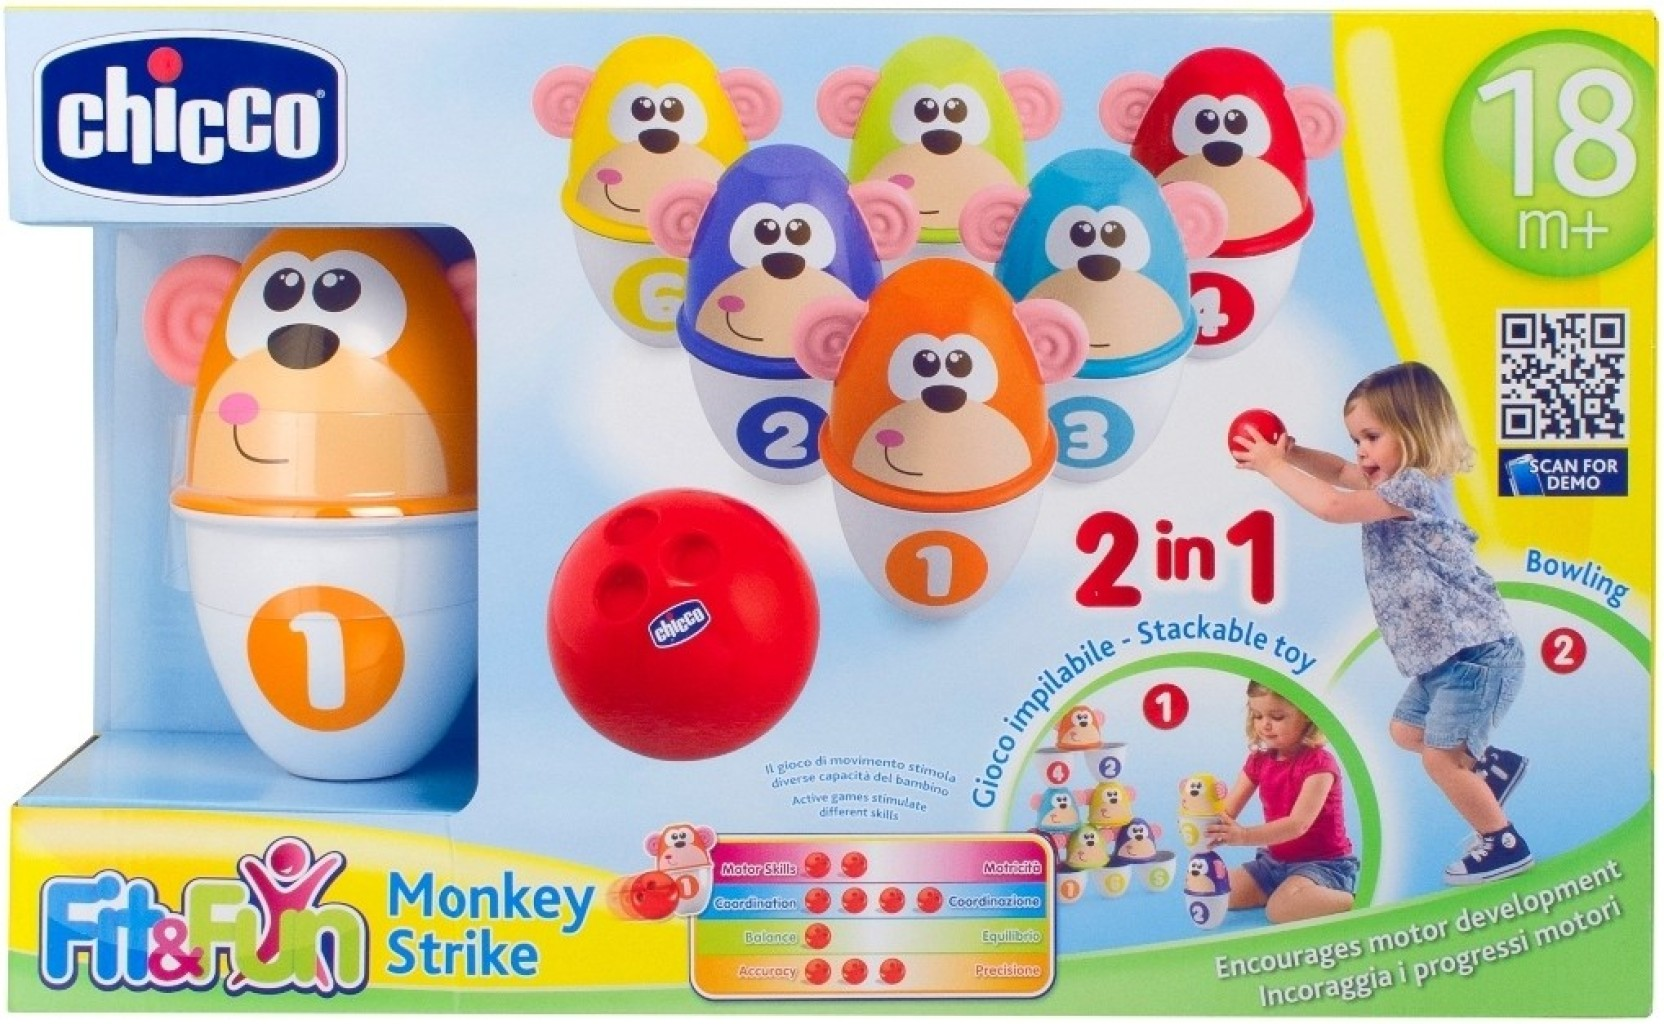 Chicco Monkey Strike Shop For Products In Rainbow Spinner Home